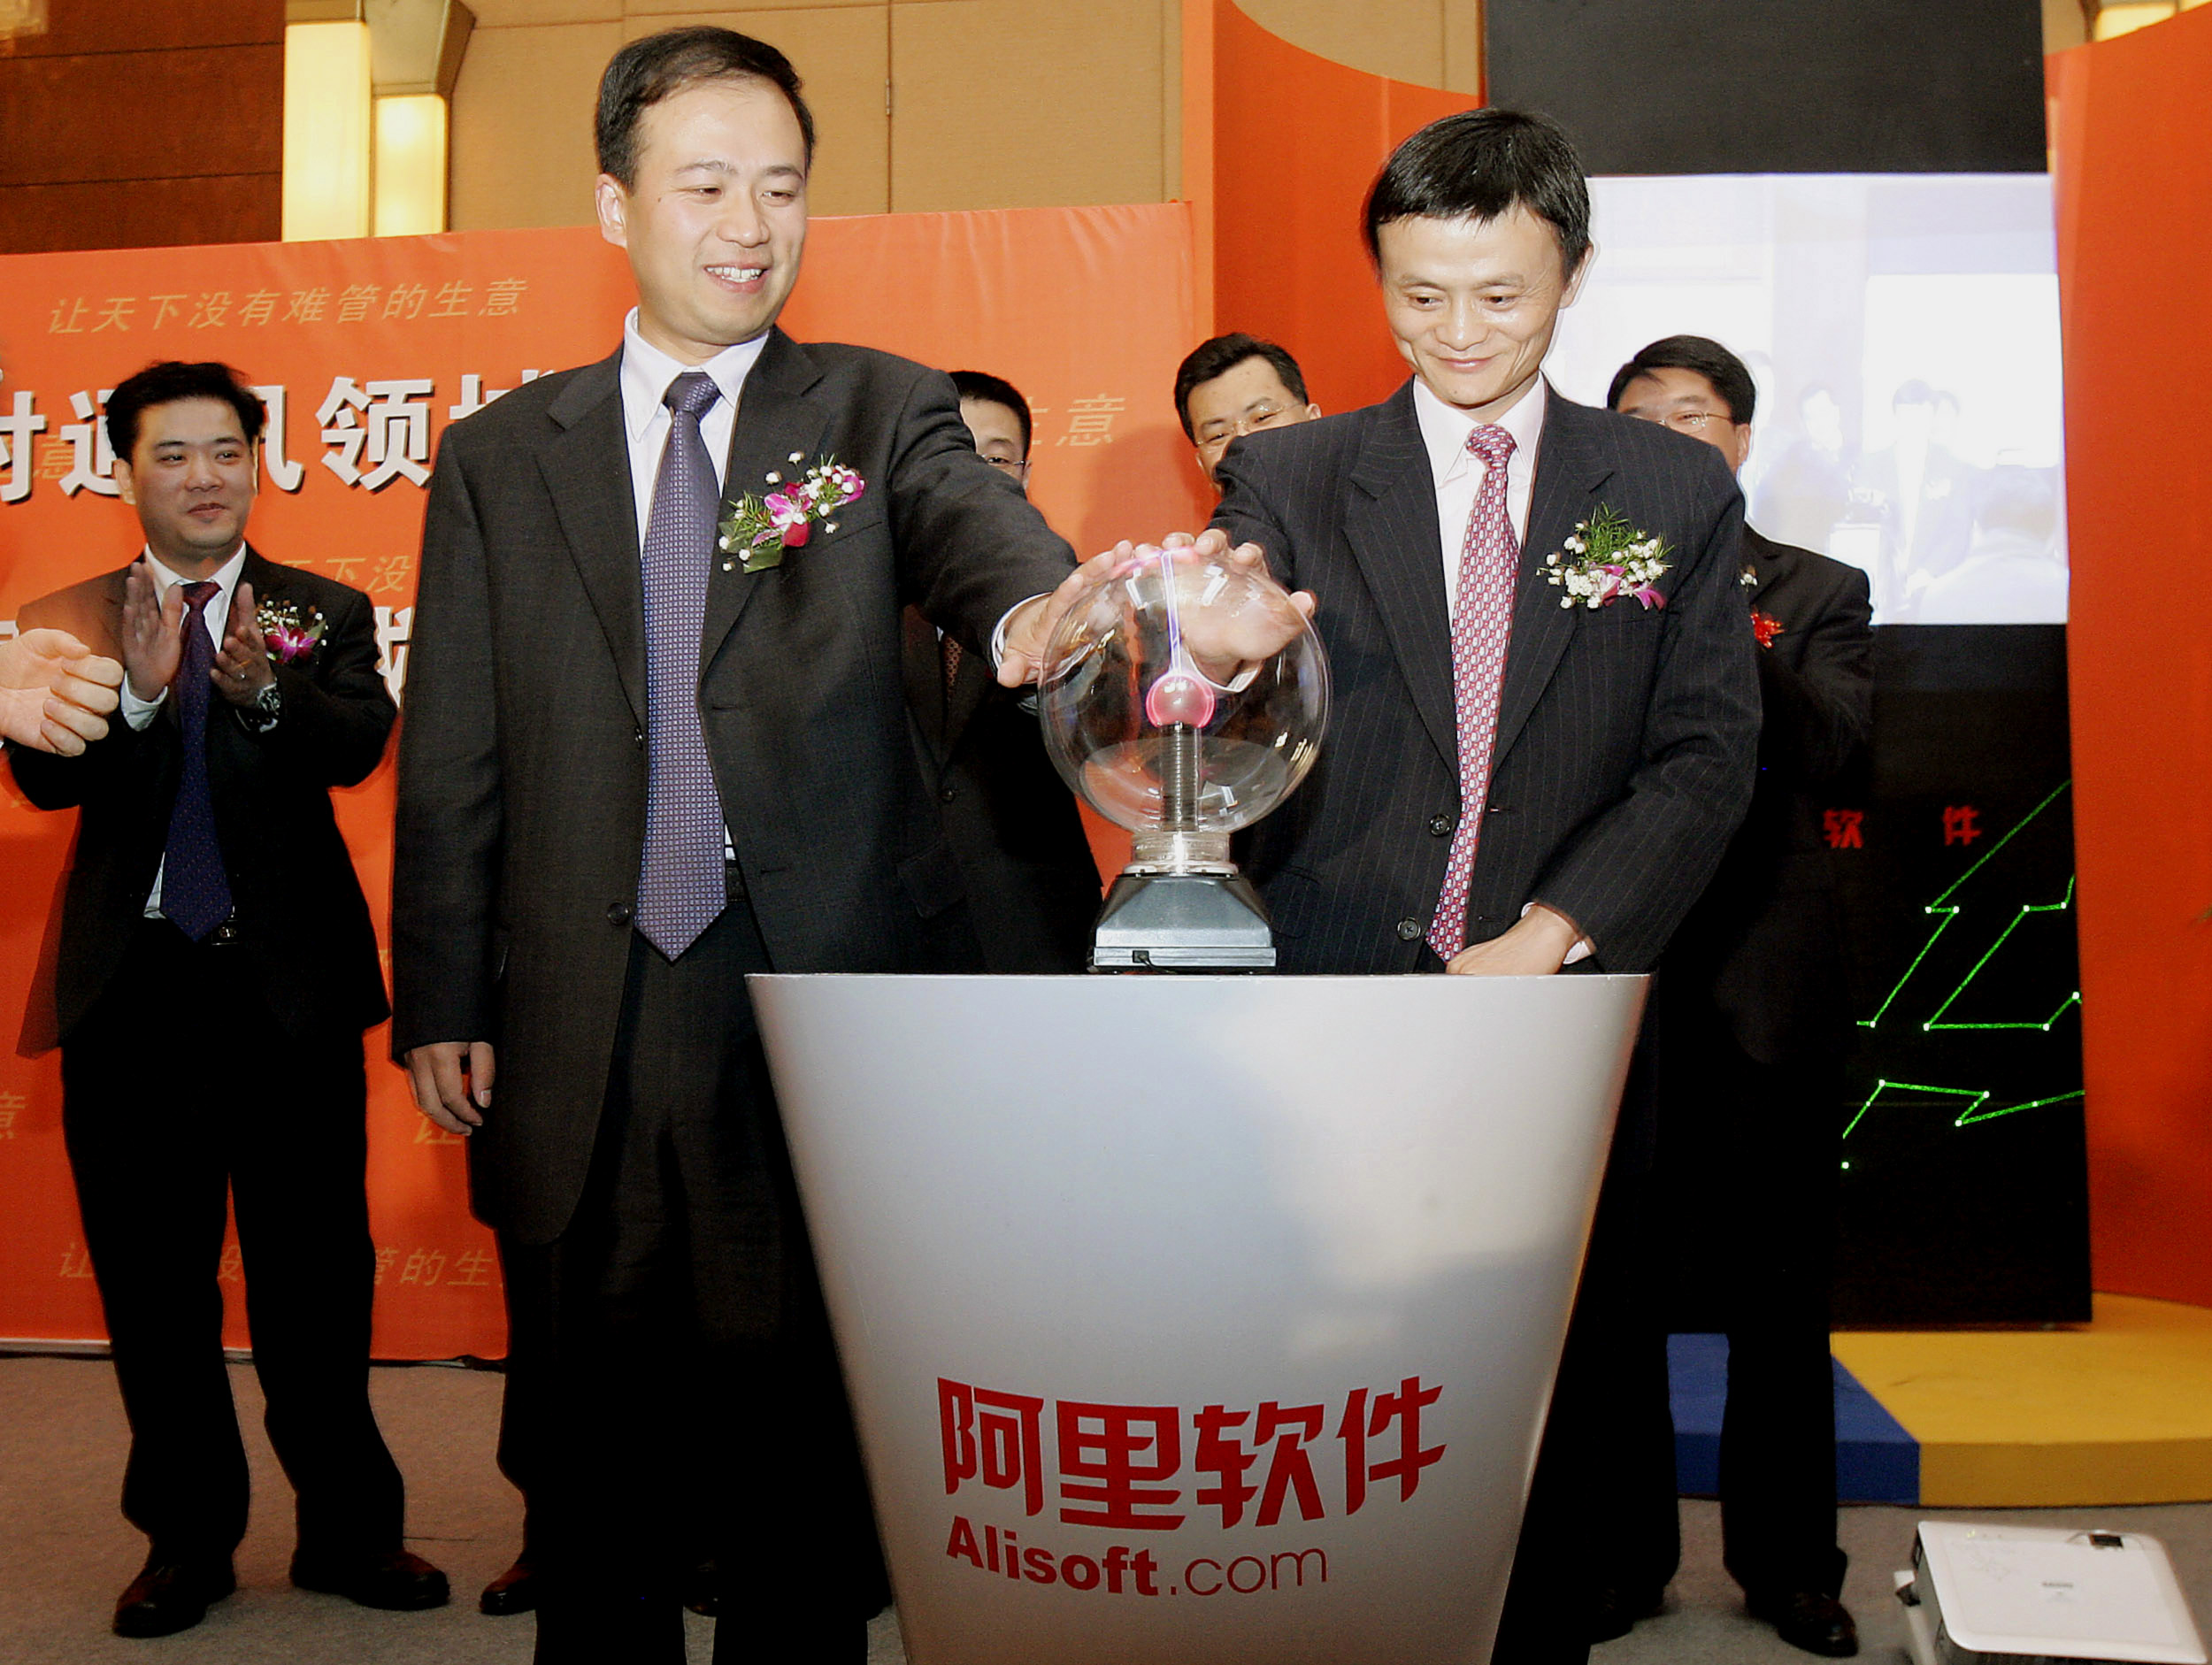 Holding a crystal ball-like orb is a good way to introduce a new software product, if you ask Ma. Here, he and Alibaba.com Vice President Oliver Wang touch a device to signify the launch of the ALISOFT software during a news conference in 2007 in Shanghai, China.